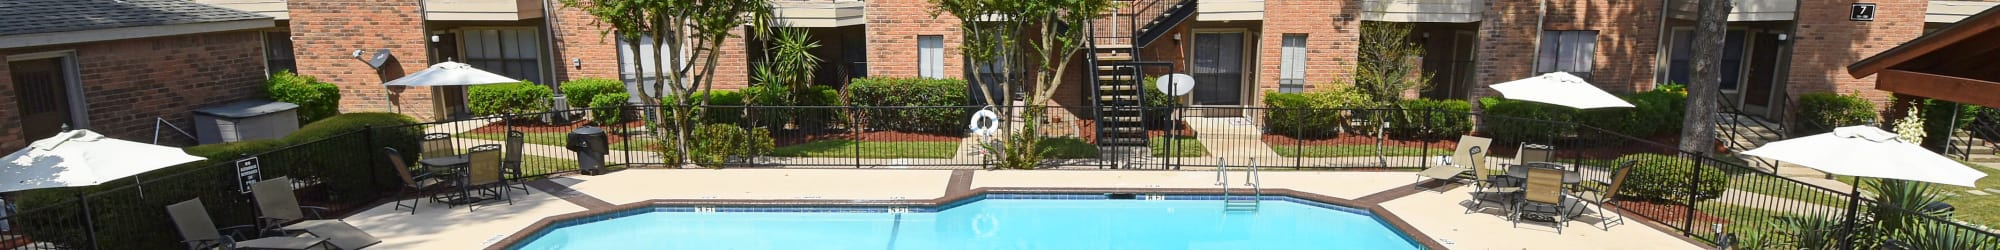 Contact Deerbrook Garden Apartments